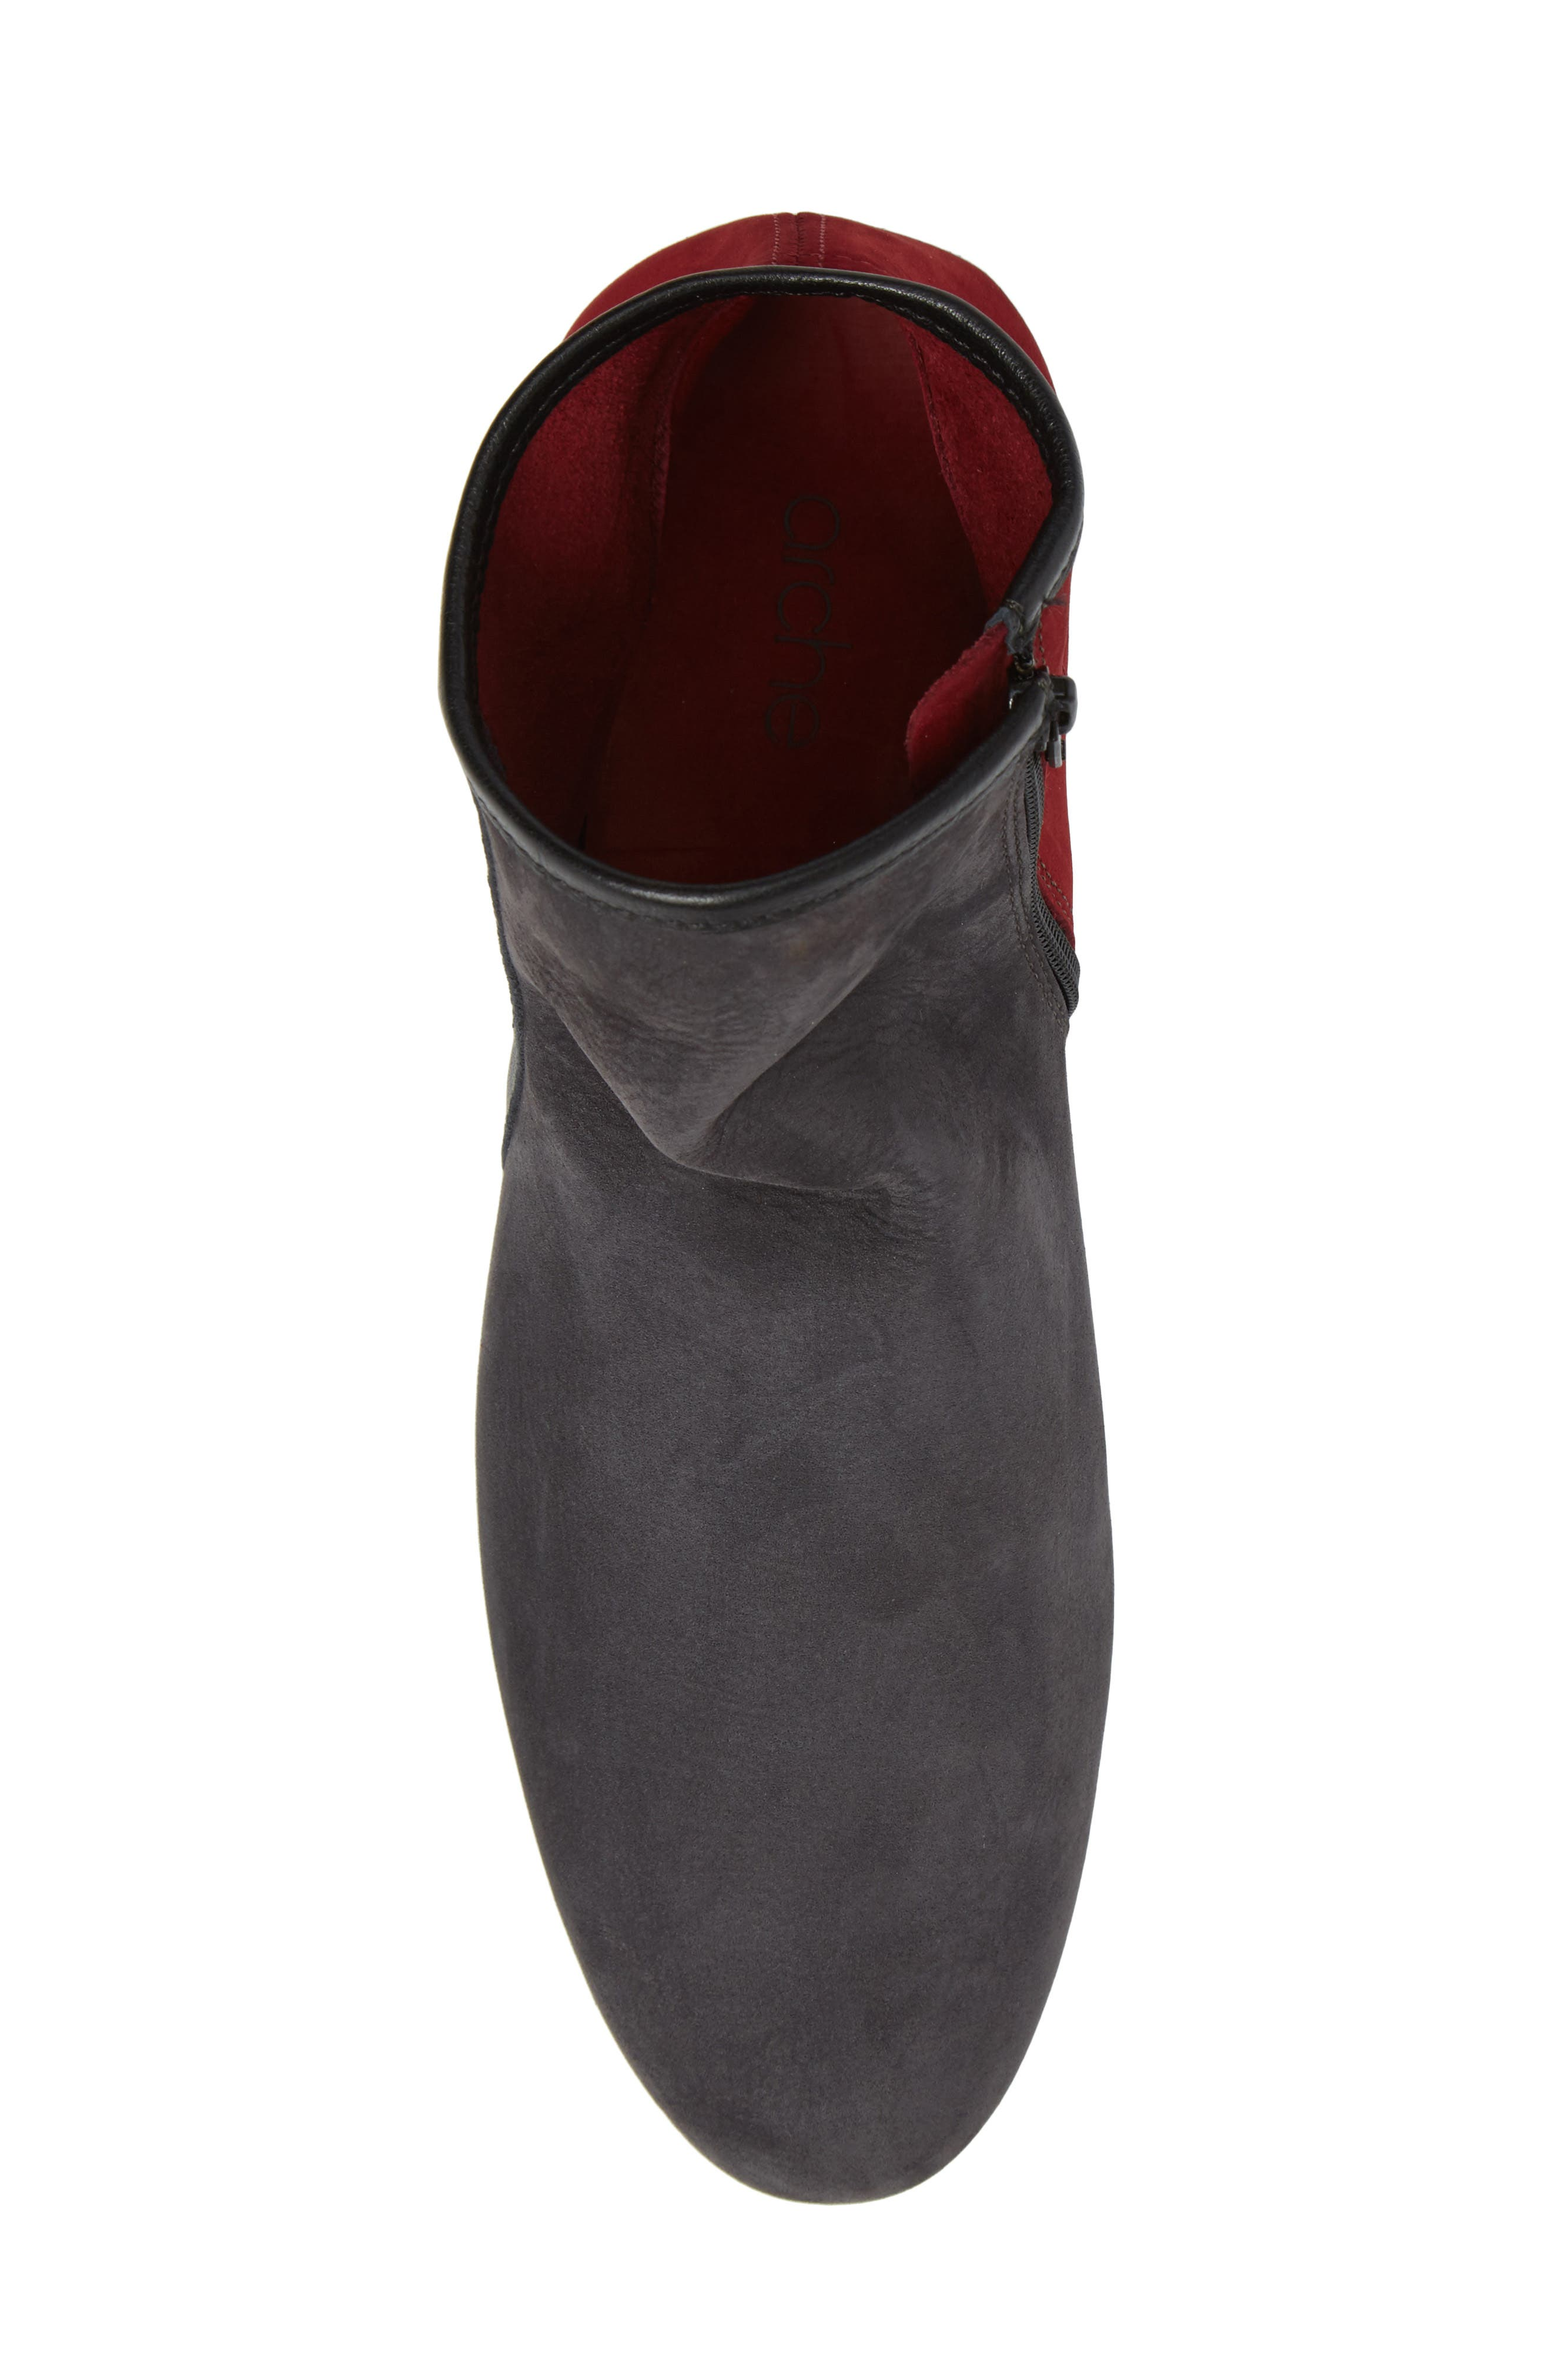 Ninote Bootie,                             Alternate thumbnail 13, color,